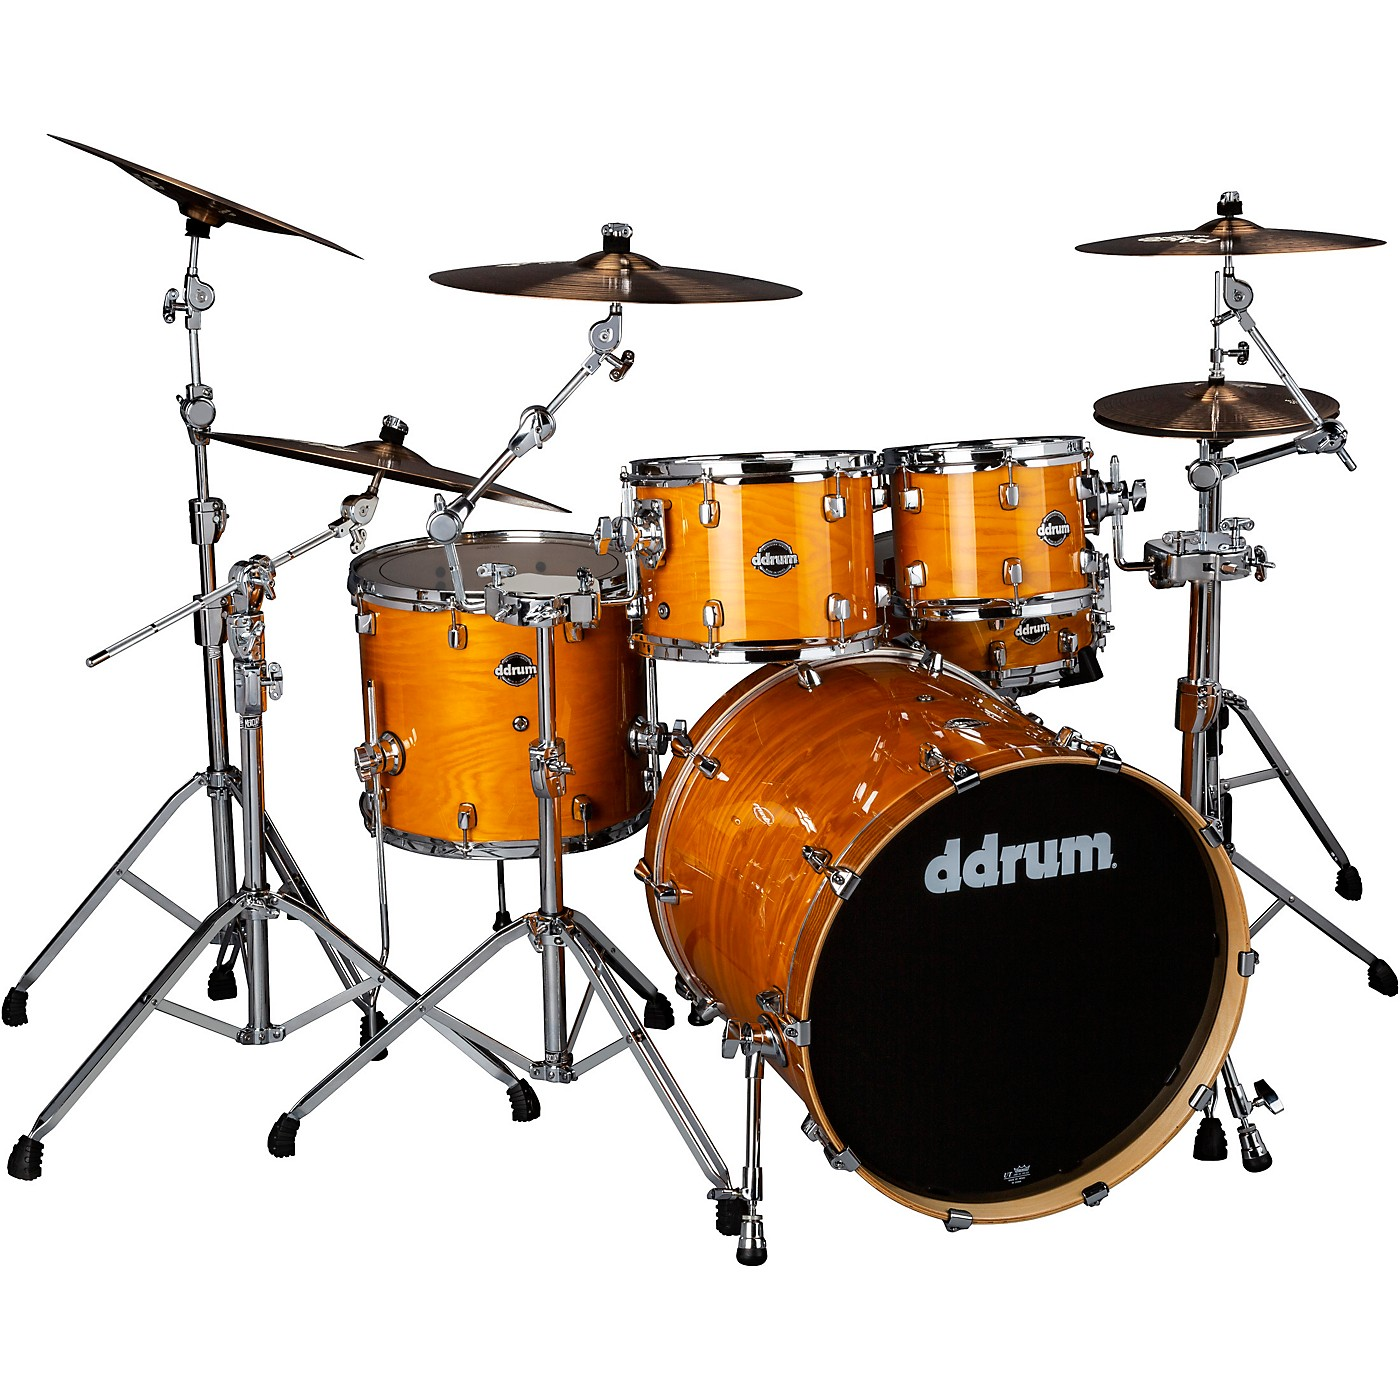 ddrum Dominion Birch 5-piece Shell Pack with Ash Veneer thumbnail